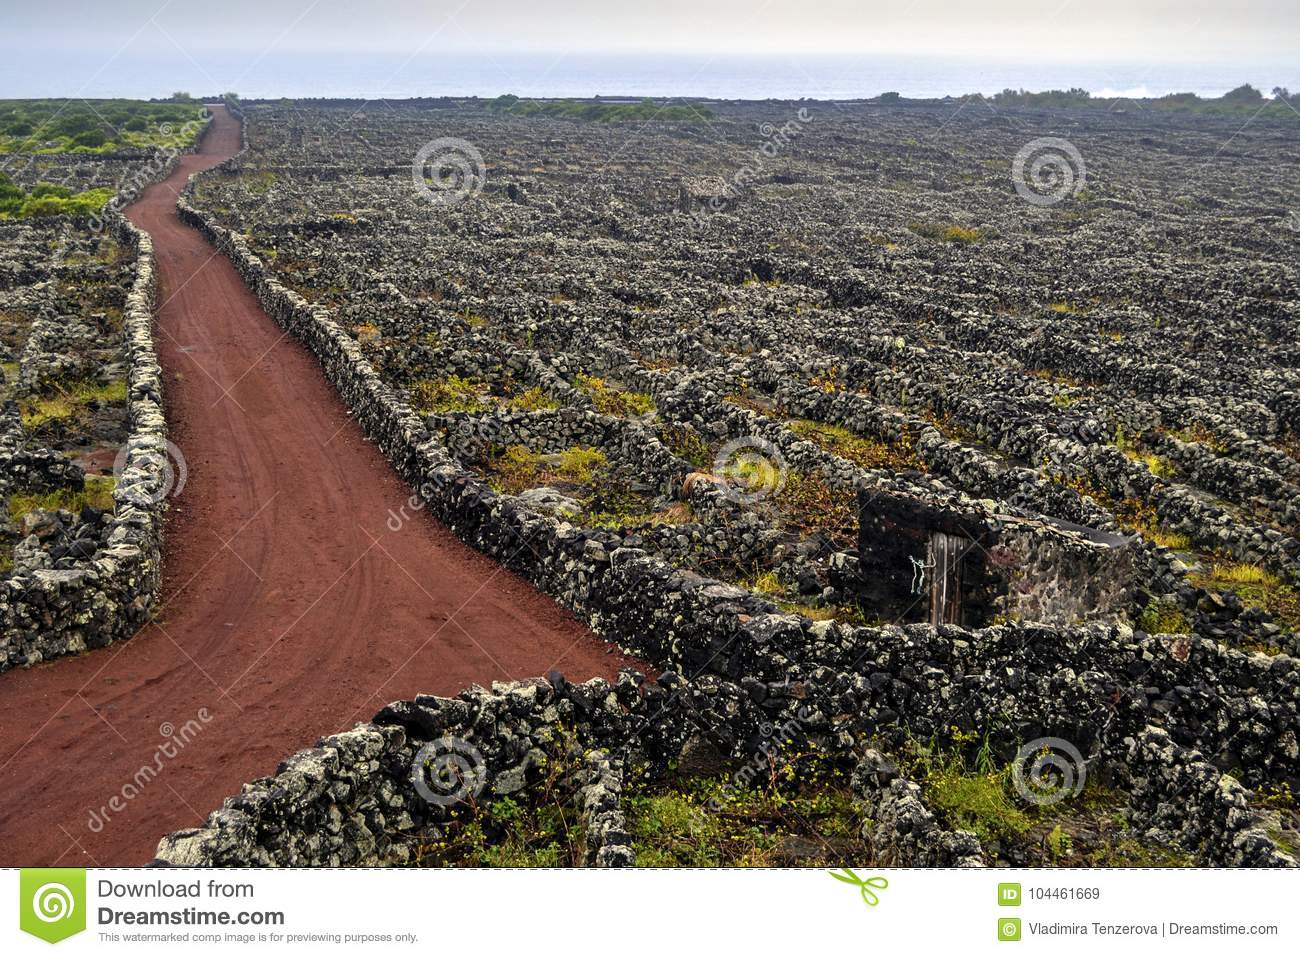 Vineyards with lava`s walls on the island of Pico listed on the UNESCO protected list